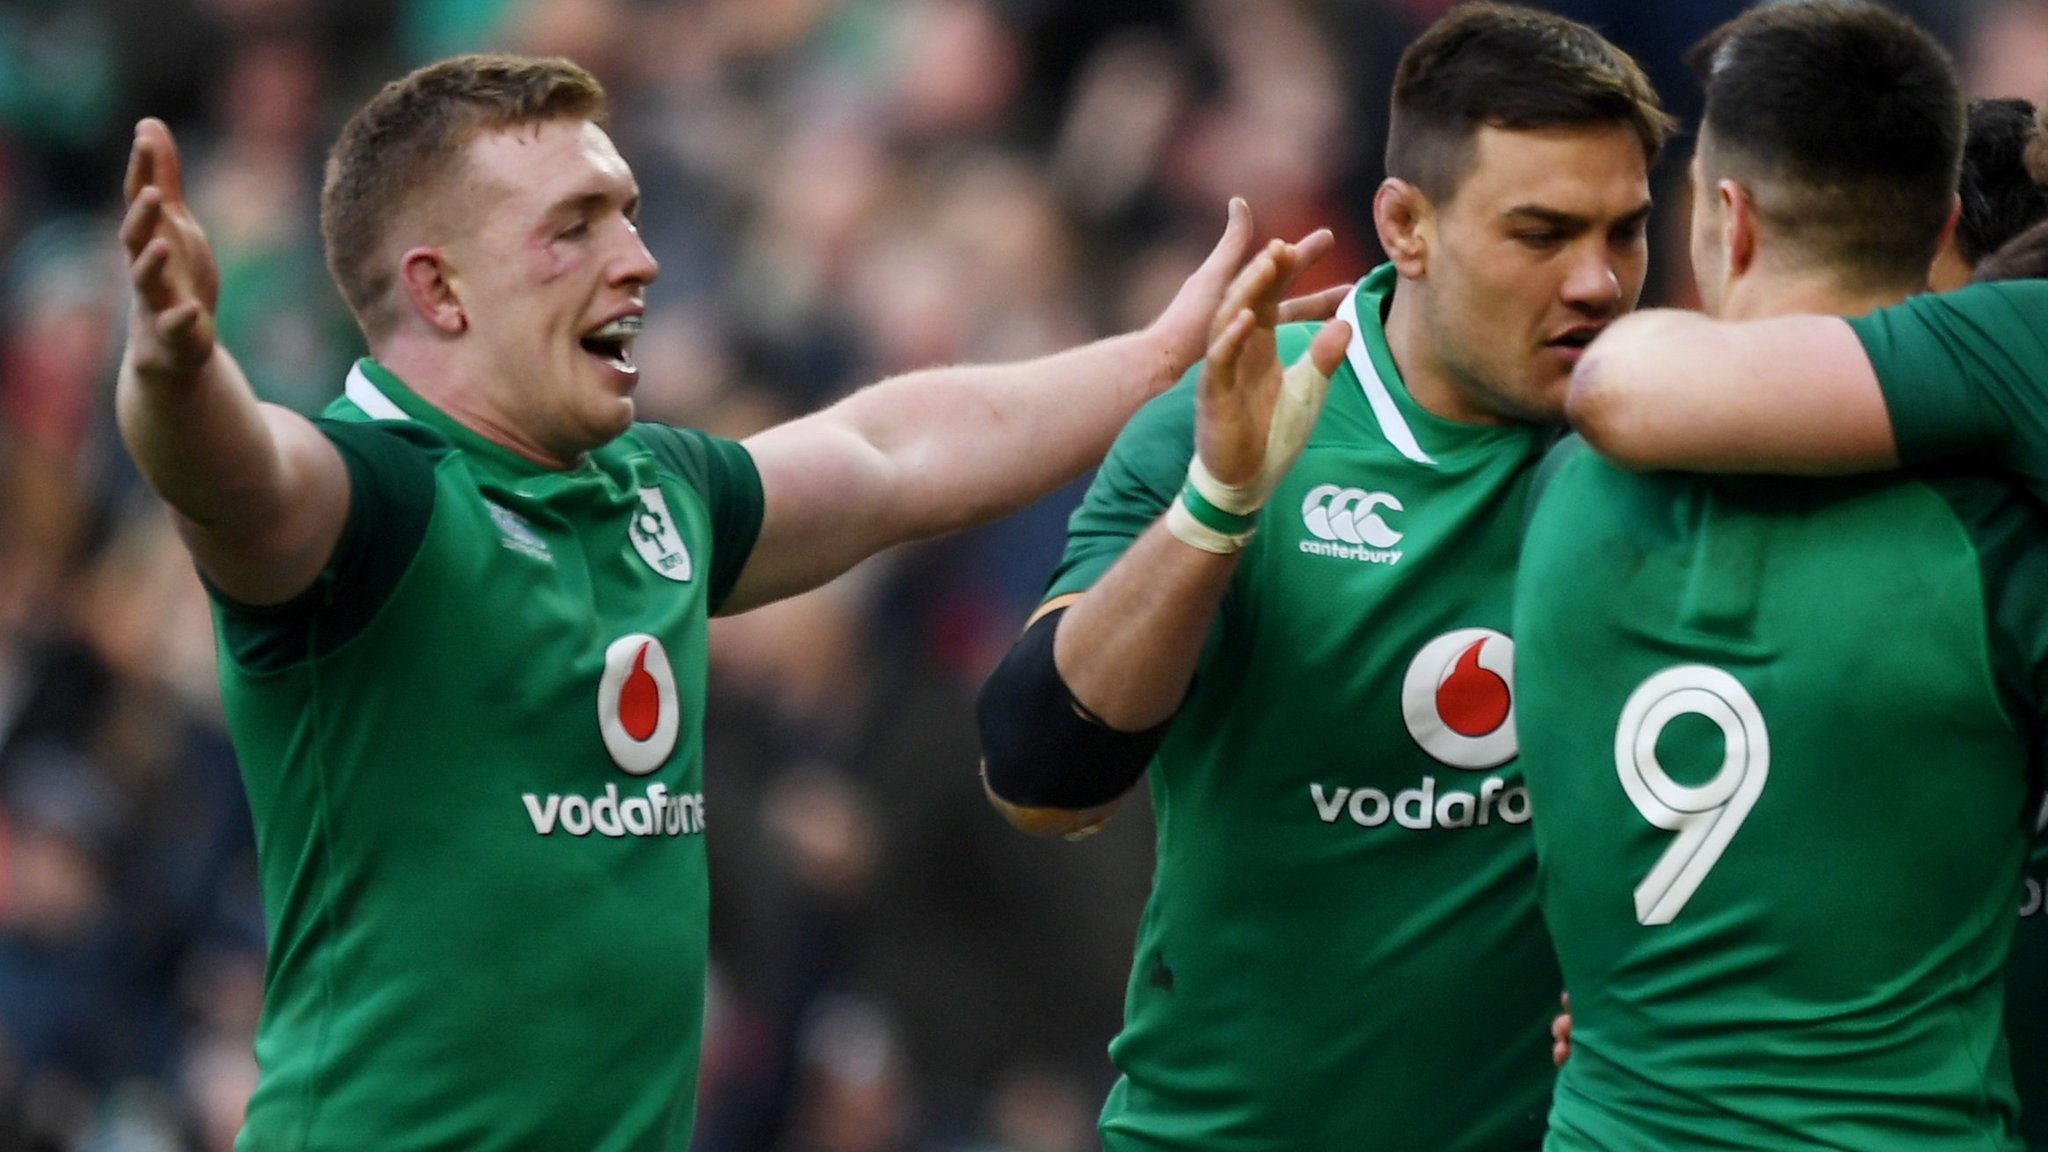 Six Nations 2018: Ireland win thriller against Wales in Dublin